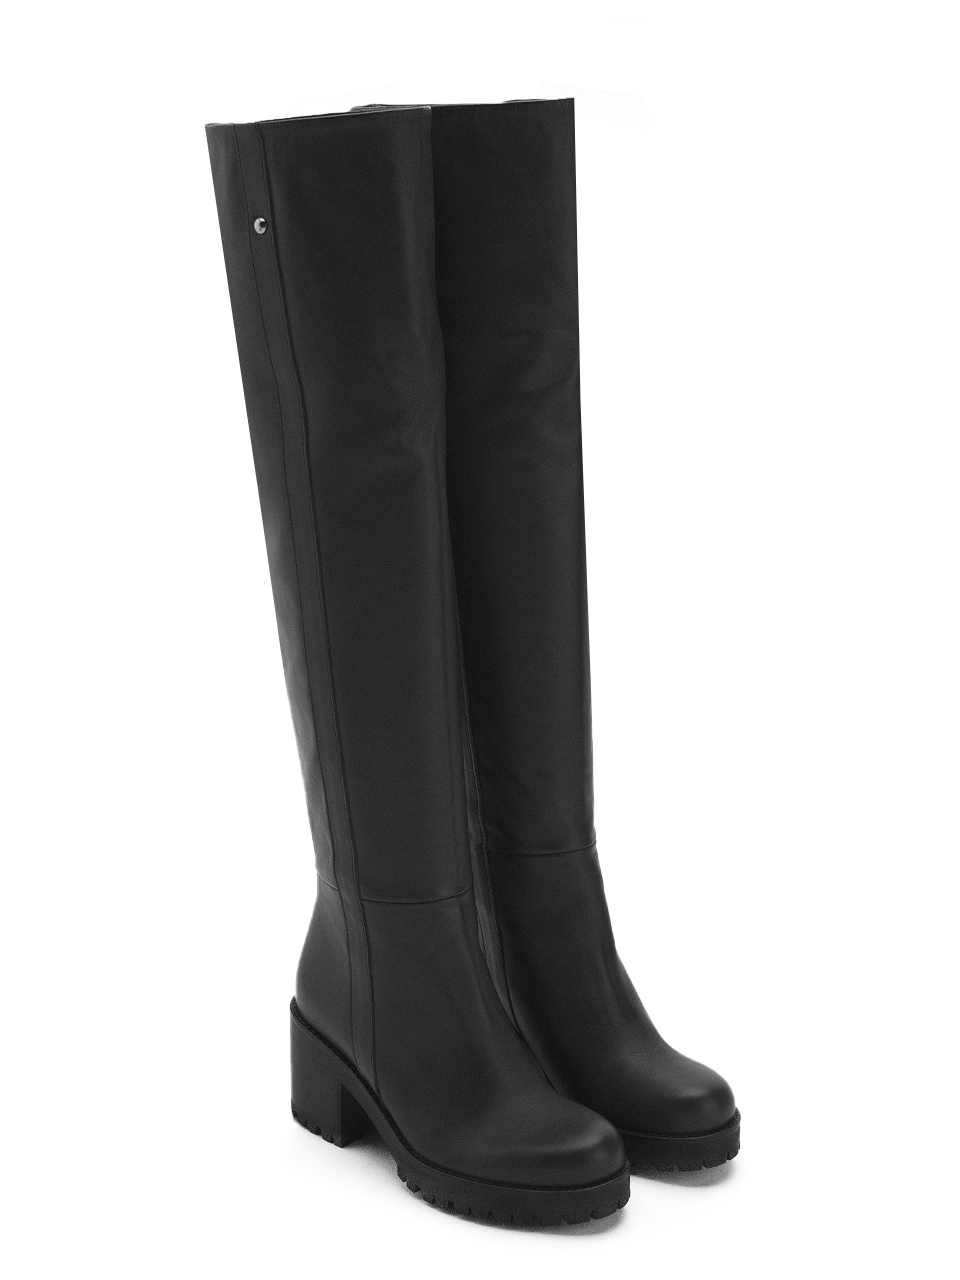 Ottod'Ame High Leg Boots in Black Side